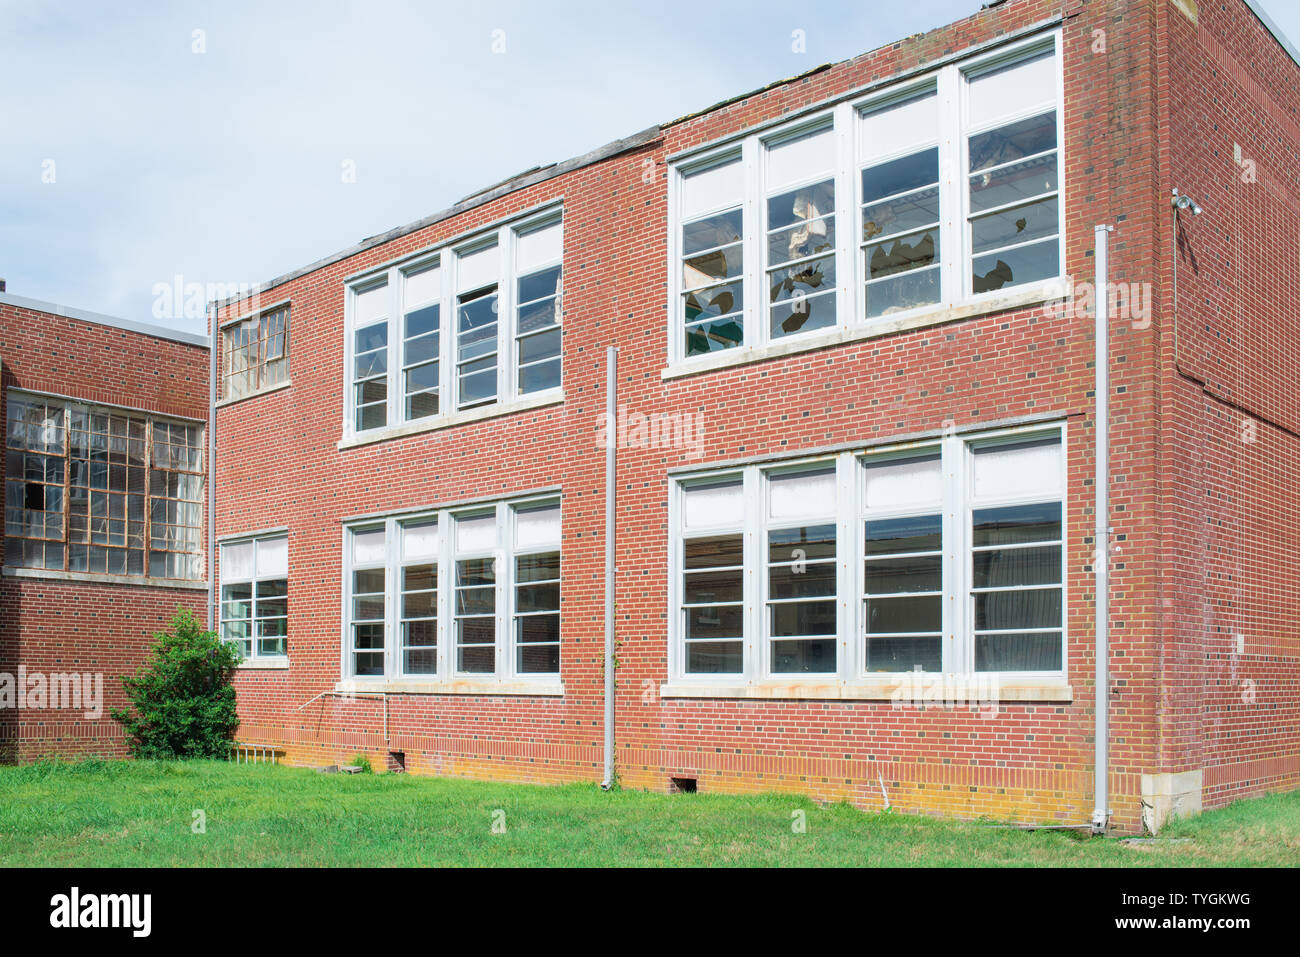 This abandoned historic high school in Painter, Virginia is on the National Register. It has an art deco design. Stock Photo